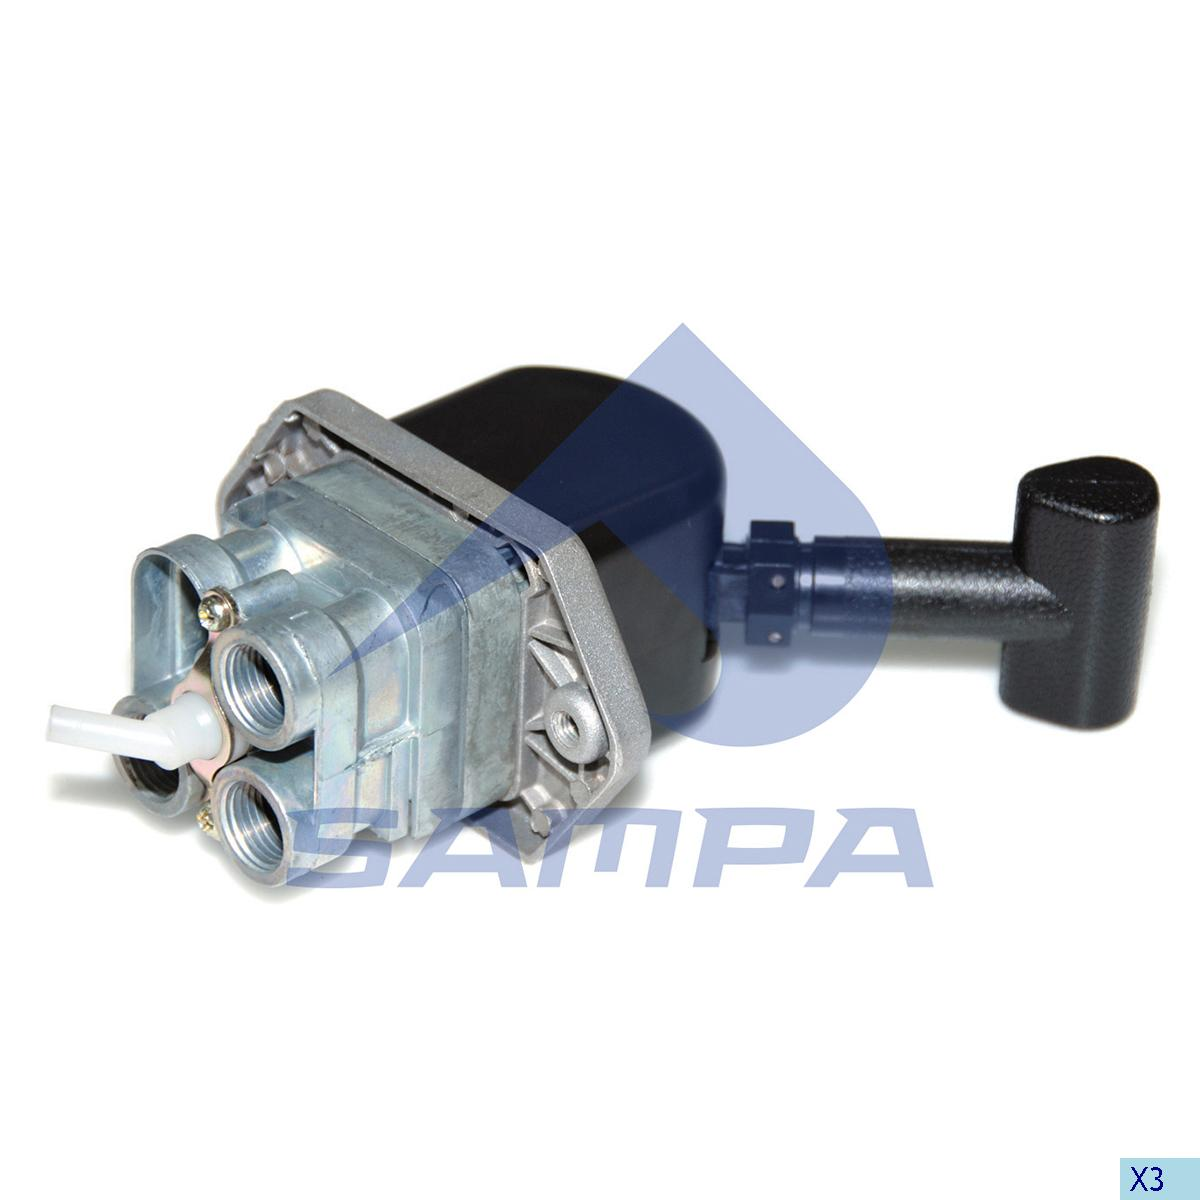 Hand Brake Valve, Daf, Compressed Air System